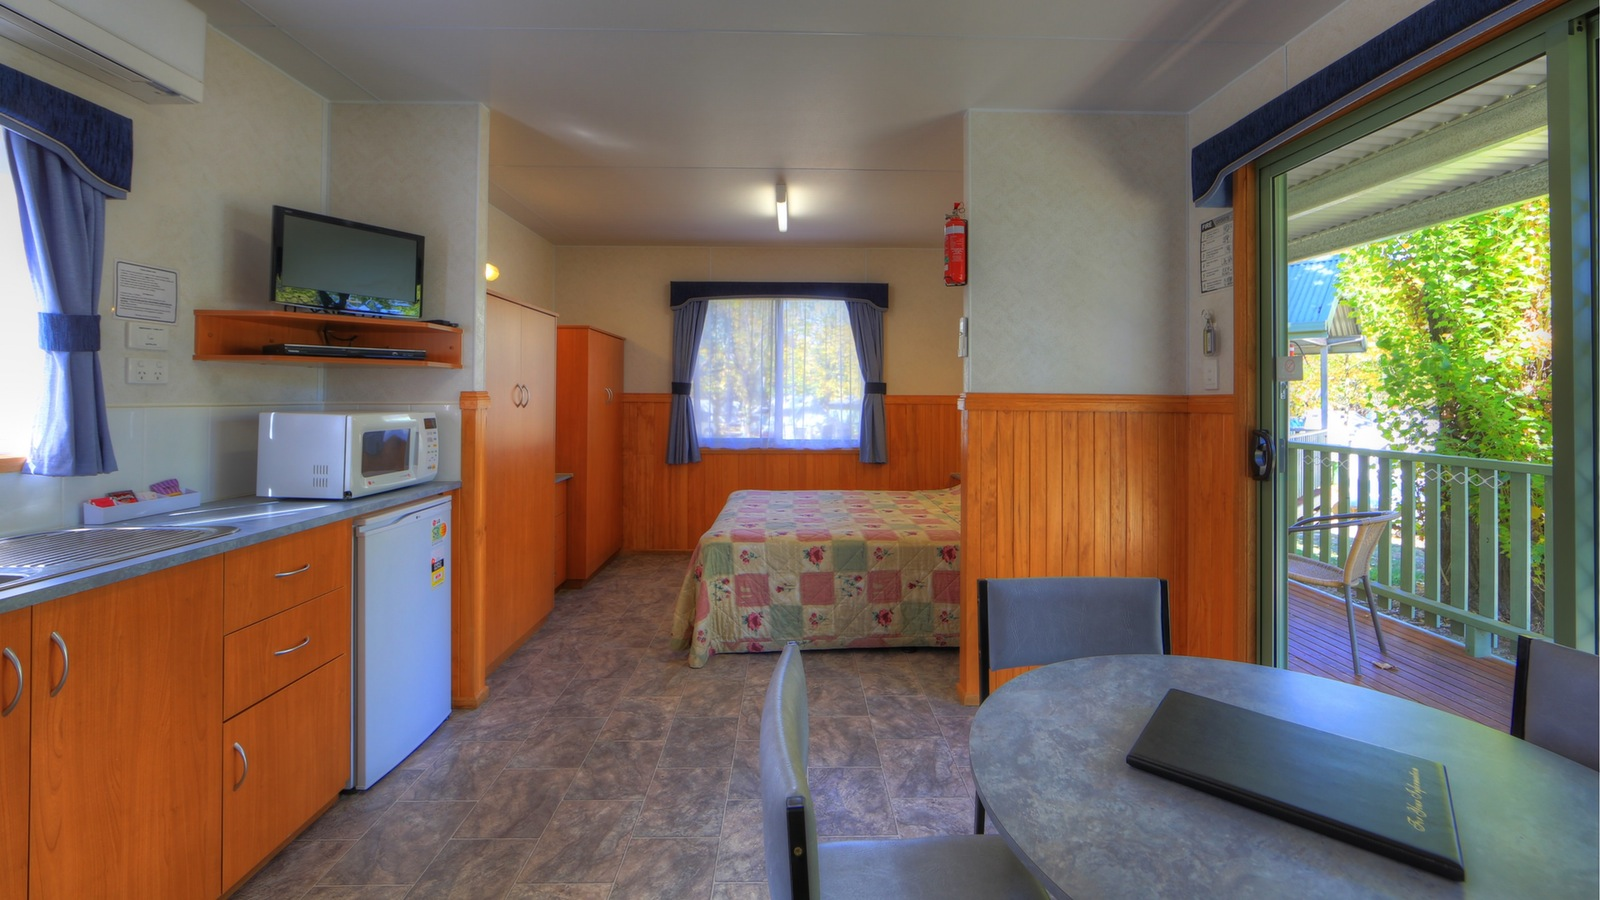 Standard Studio cabin - internal view